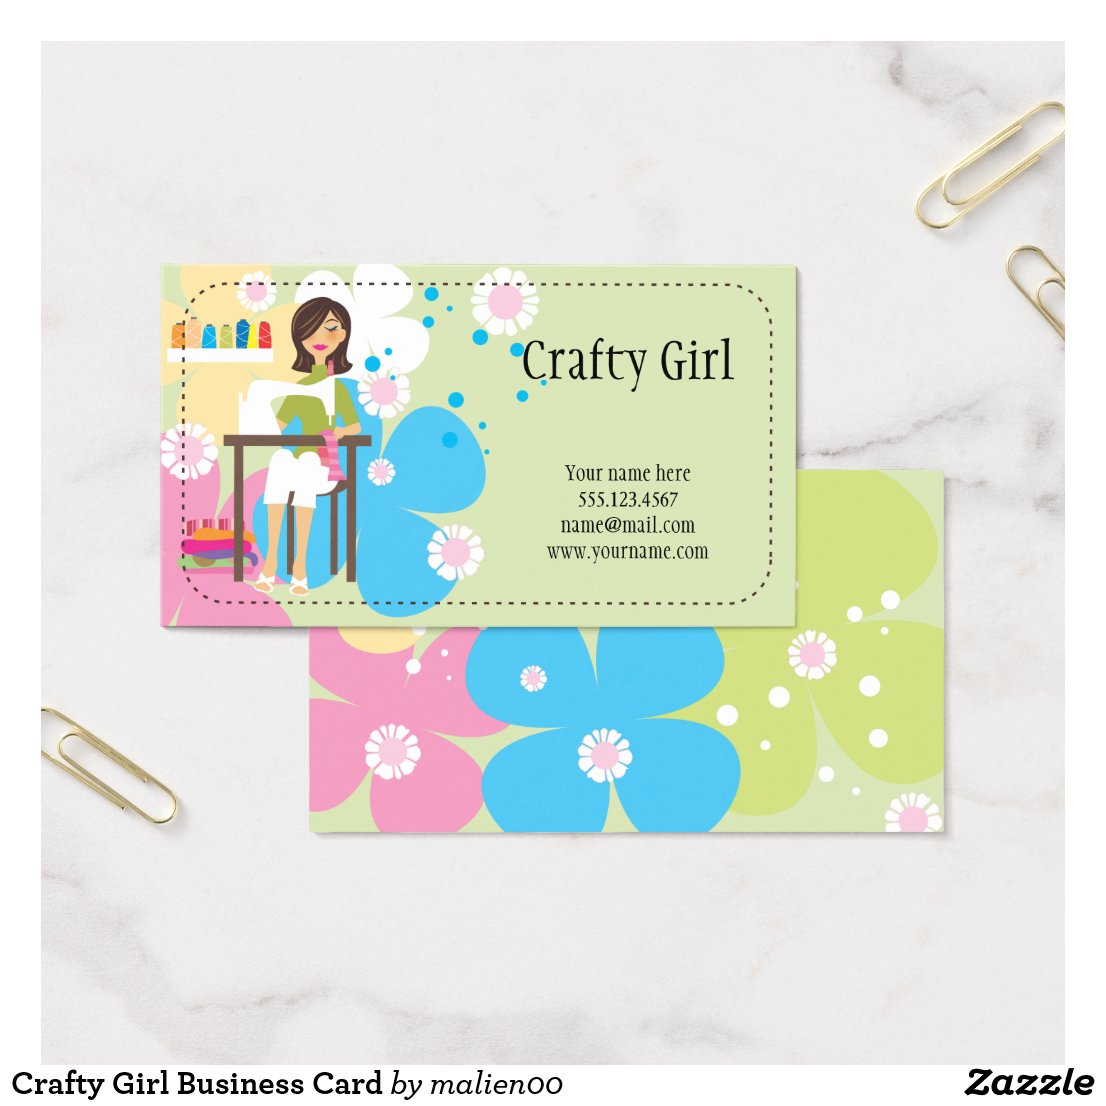 Crafty Girl Business Card